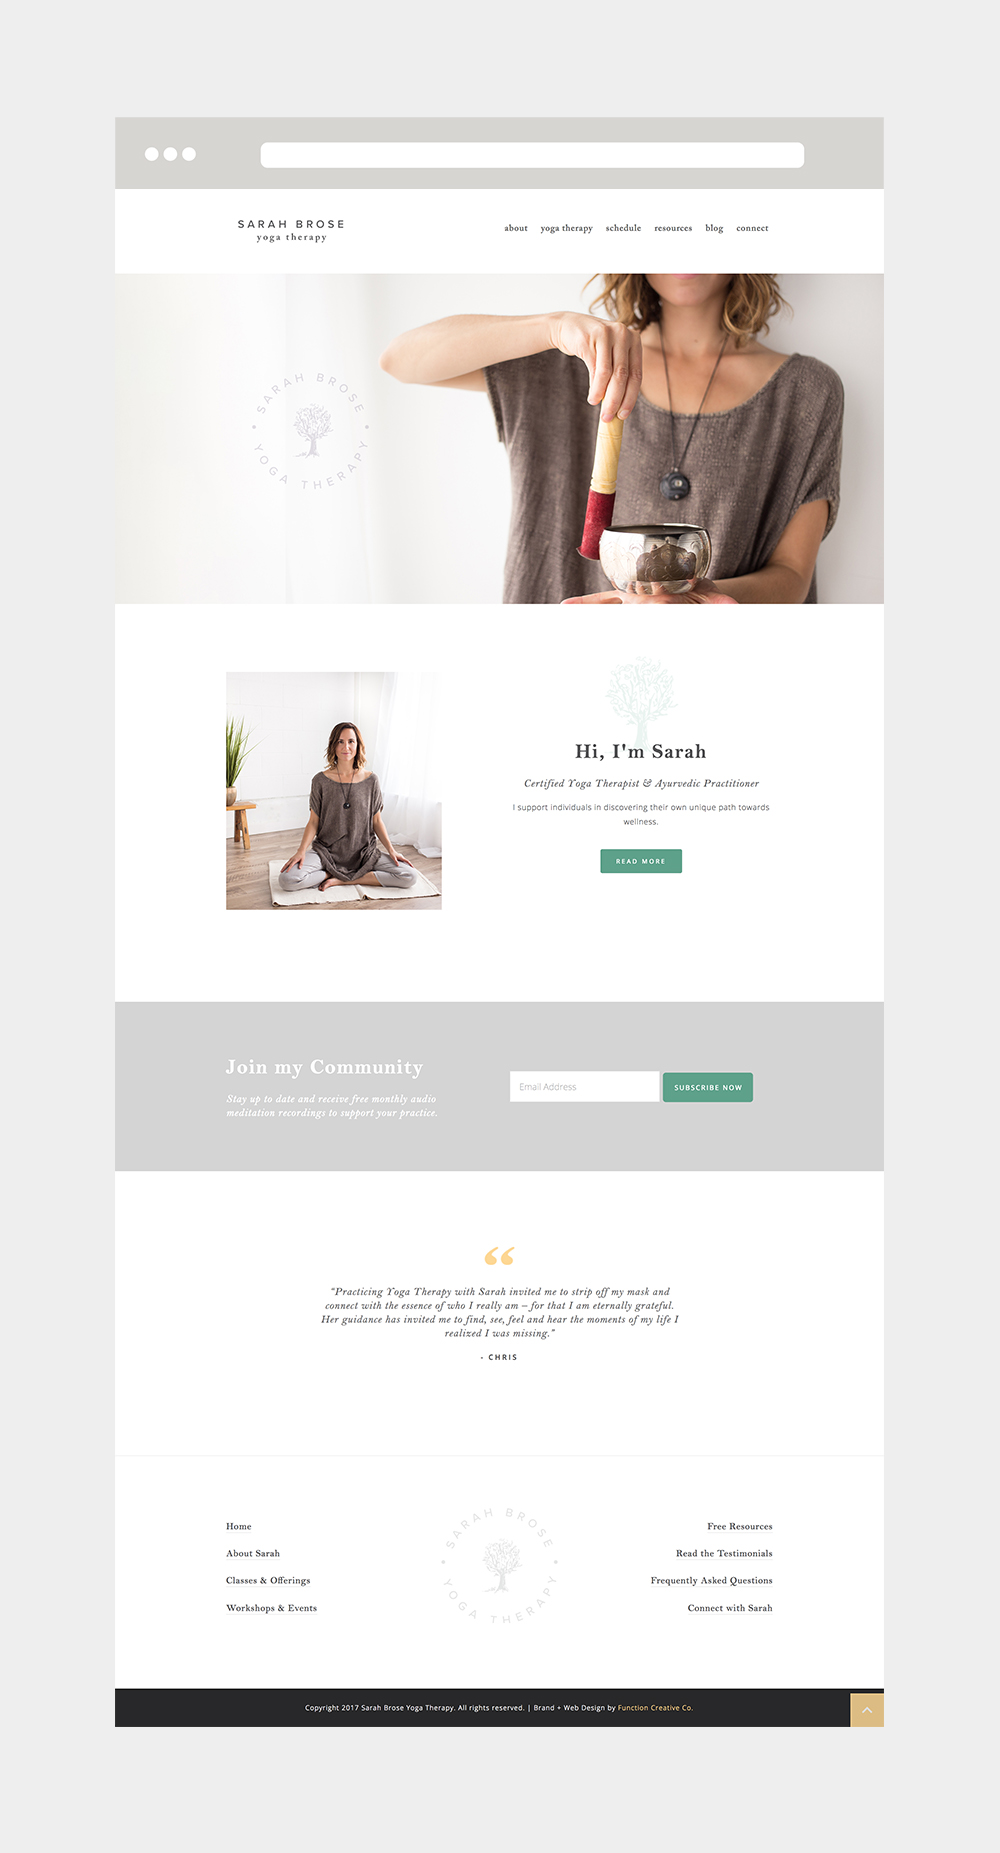 web-design-capture-mockup-sarah-brose-yoga-therapy.jpg